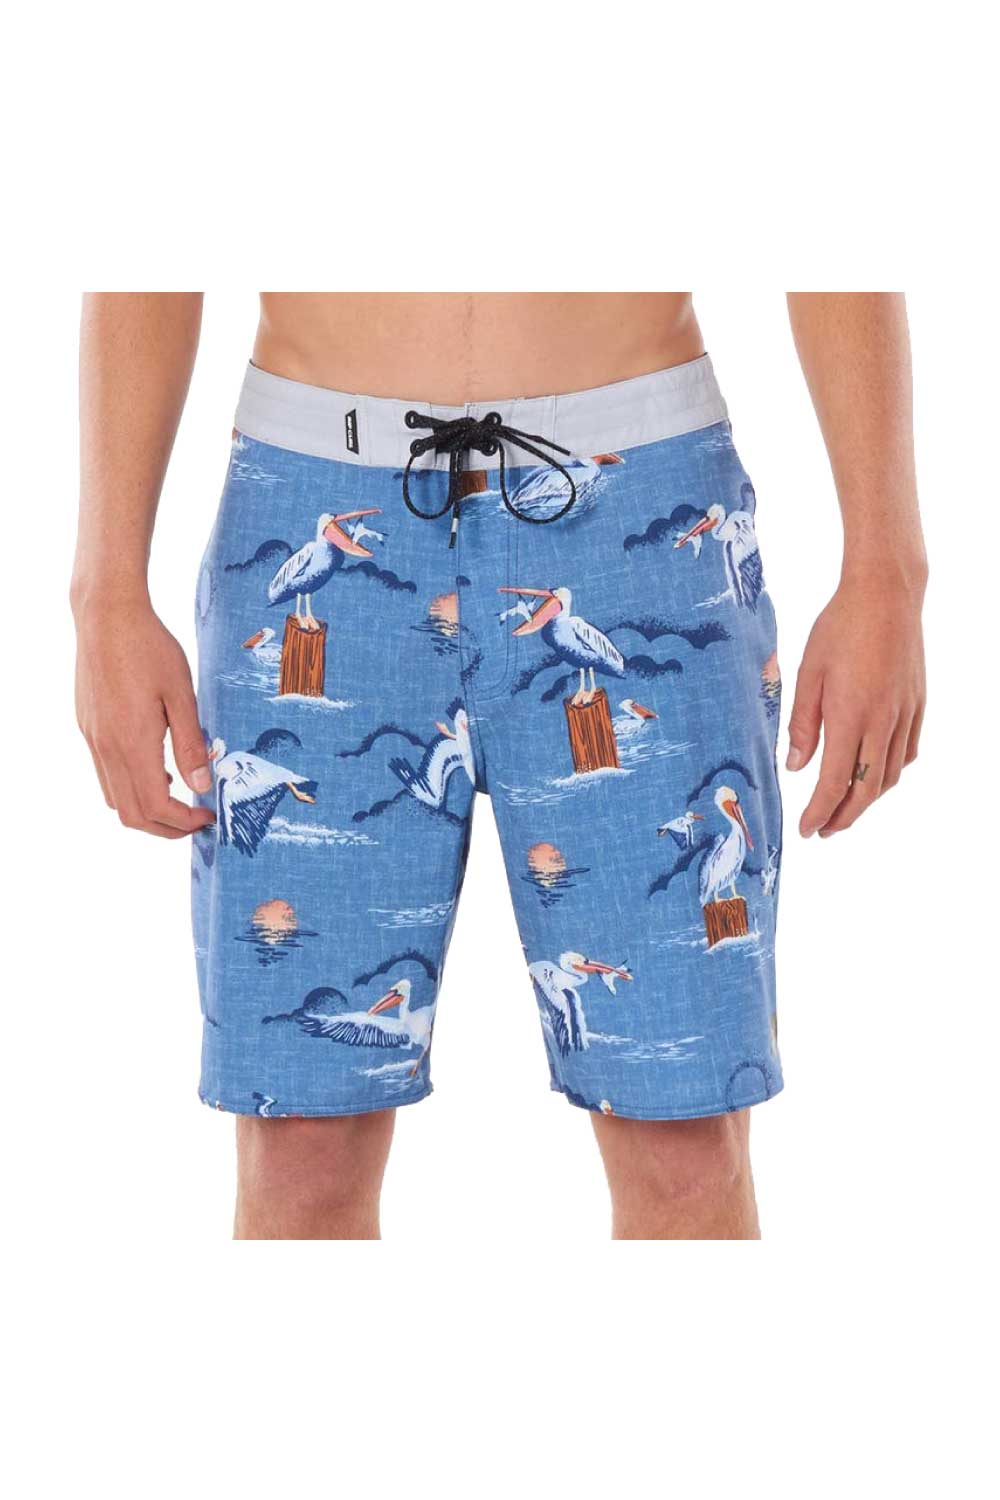 "Rip Curl Men's Shipwrecks 20"" Mirage Boardshort"